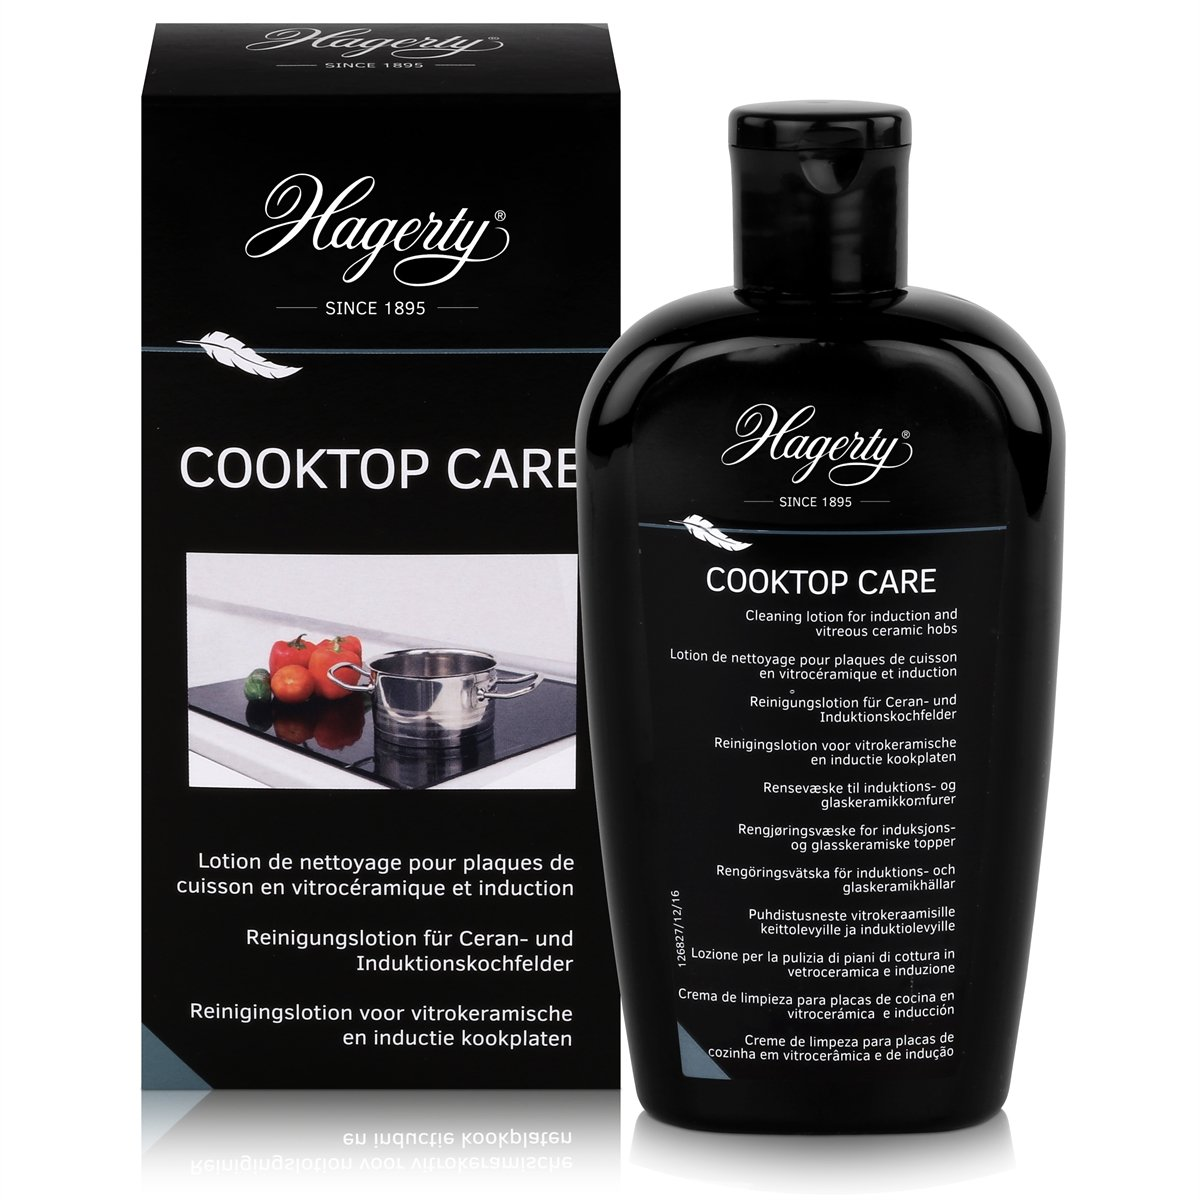 Amazon.com: Hagerty Cooktop Care 250 ml Lotion for the ...